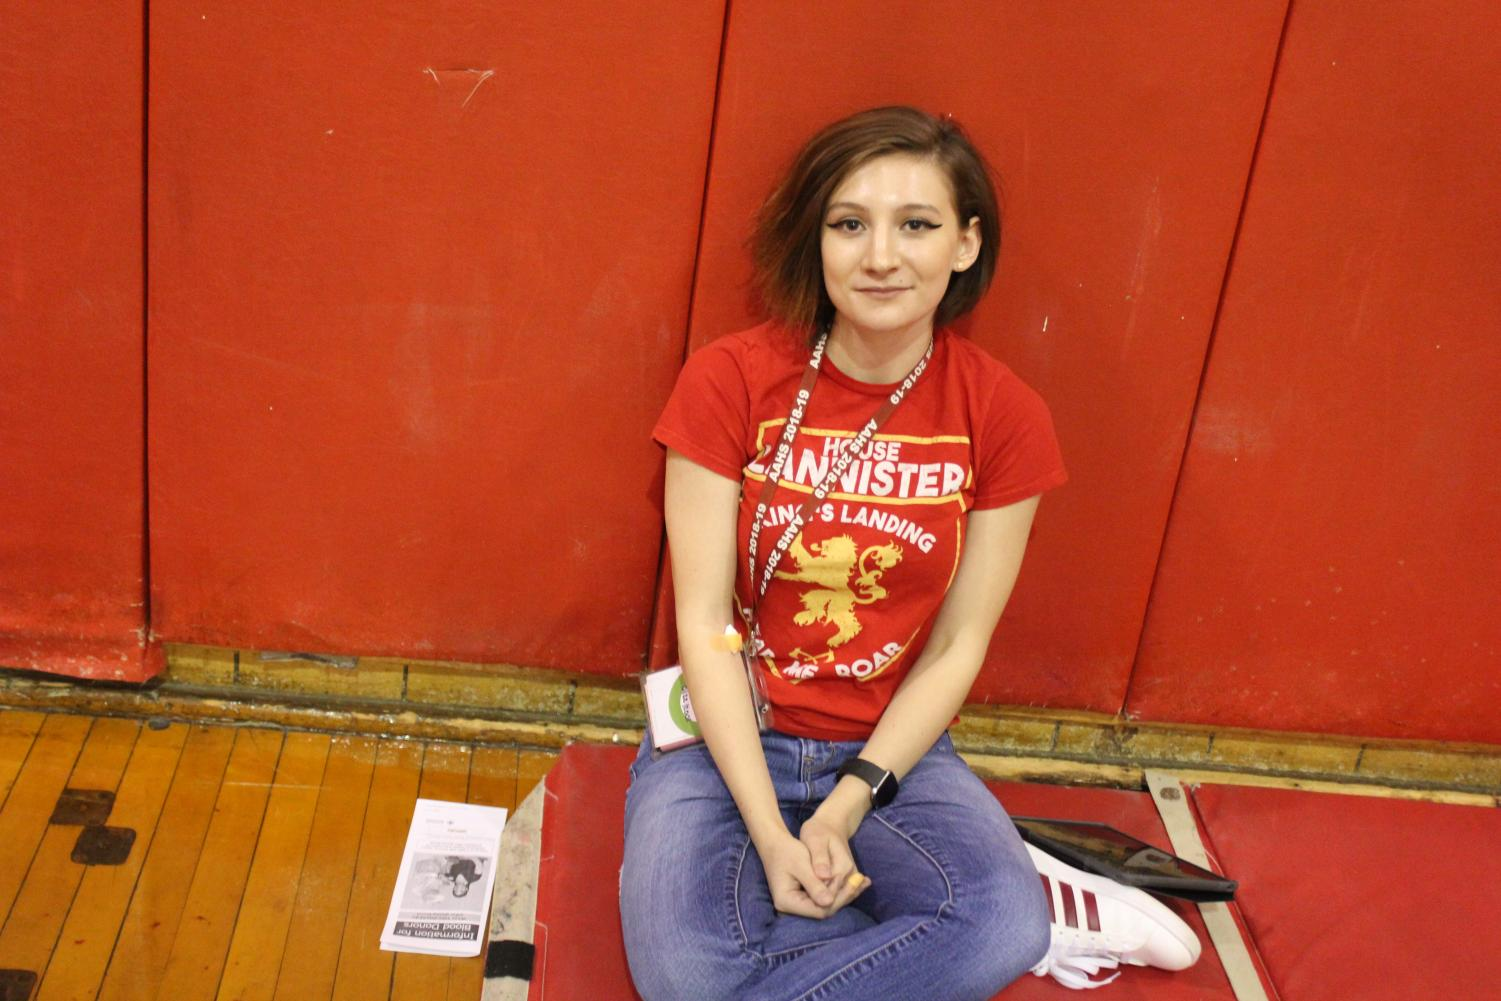 Senior+Geneva+Flarend+waits+to+feel+better+after+donating+blood+until+she+can+go+back+up+to+her+classroom.+Flarend+has+donated+previously+and+will+continue+to+donate.+%22My+mom+volunteered+to+donate+her+blood+to+the+Red+Cross+and+I+went+with+her%2C+since+I+went+with+her+I+always+thought+I+should+do+it+because+it+is+a+good+thing+to+do+and+it+can+make+a+big+difference%2C%22+Flarend+said.